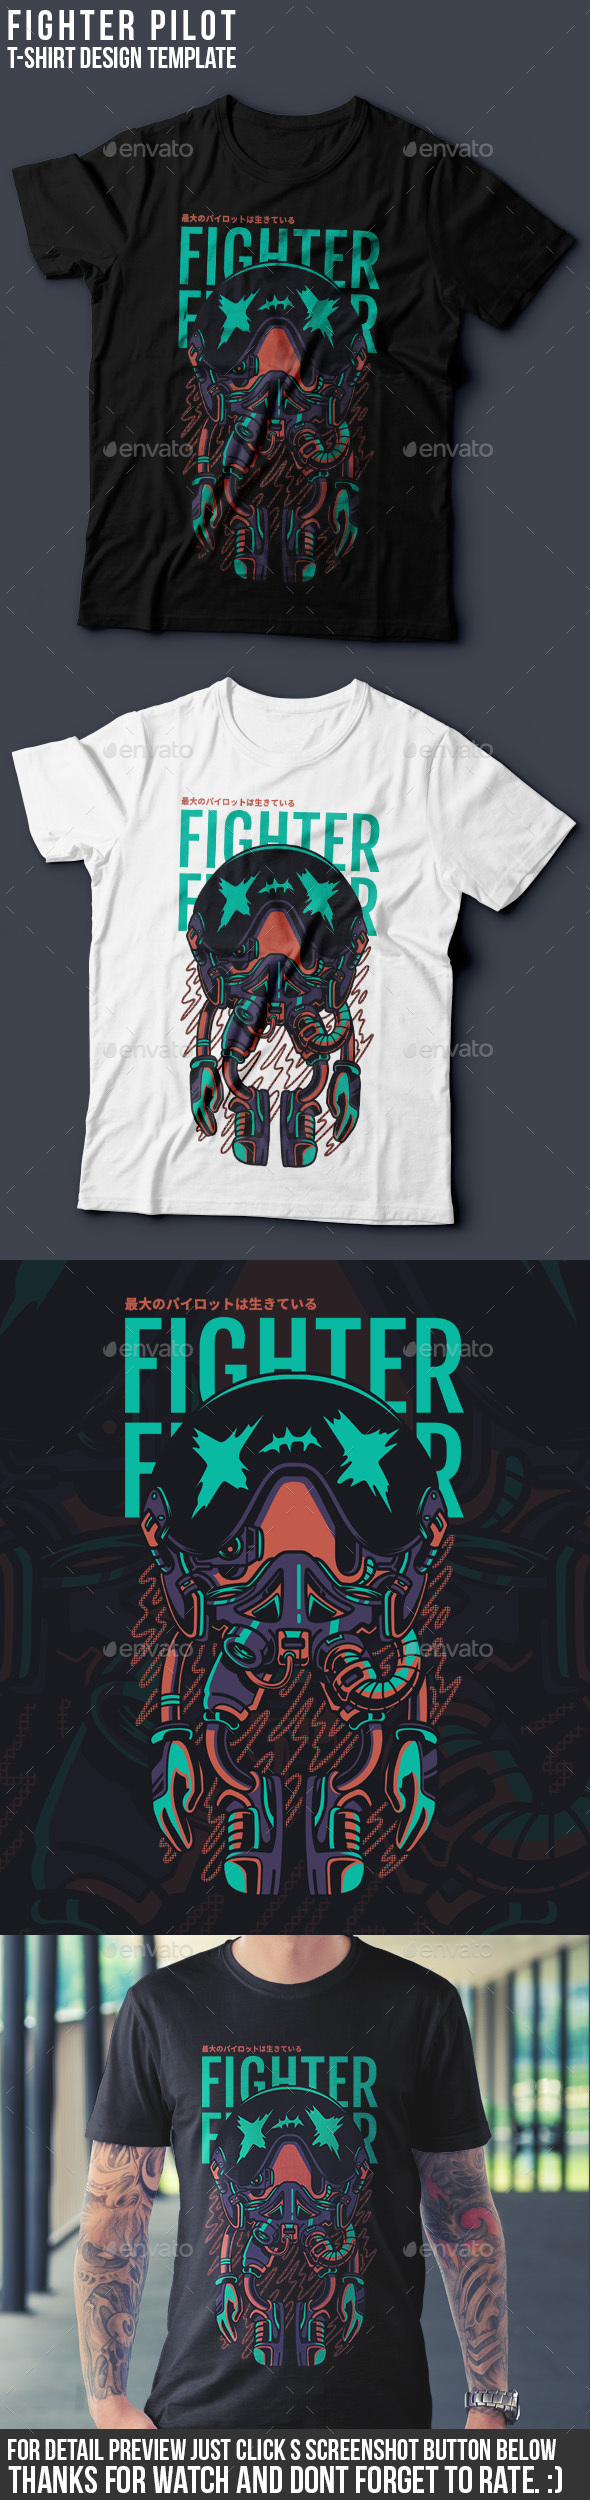 Jet Fighter T-Shirt Design - Sports & Teams T-Shirts